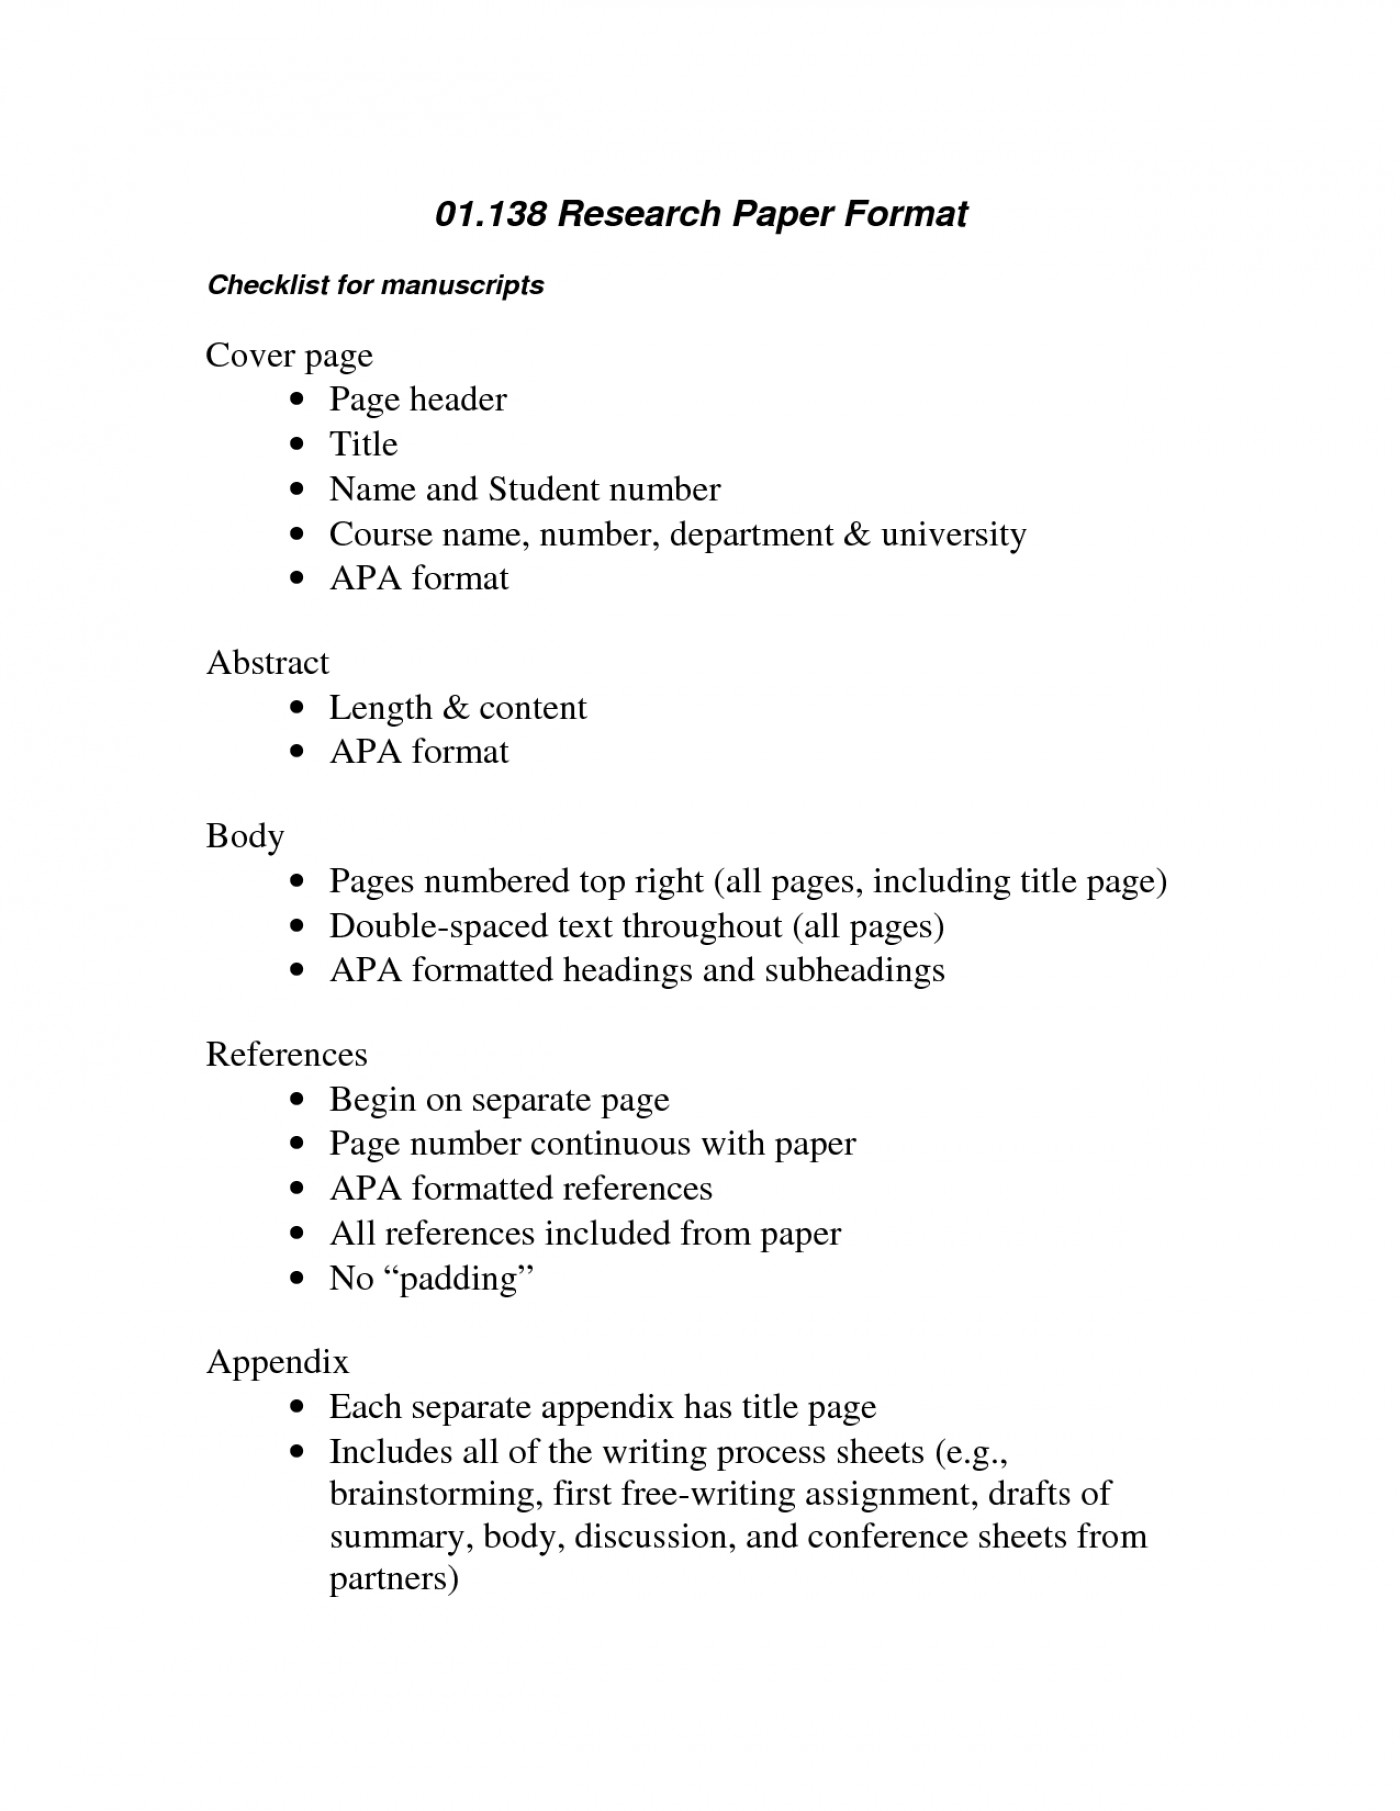 002 Apa Research Paper Format Outstanding Purdue Owl Example 2015 1400